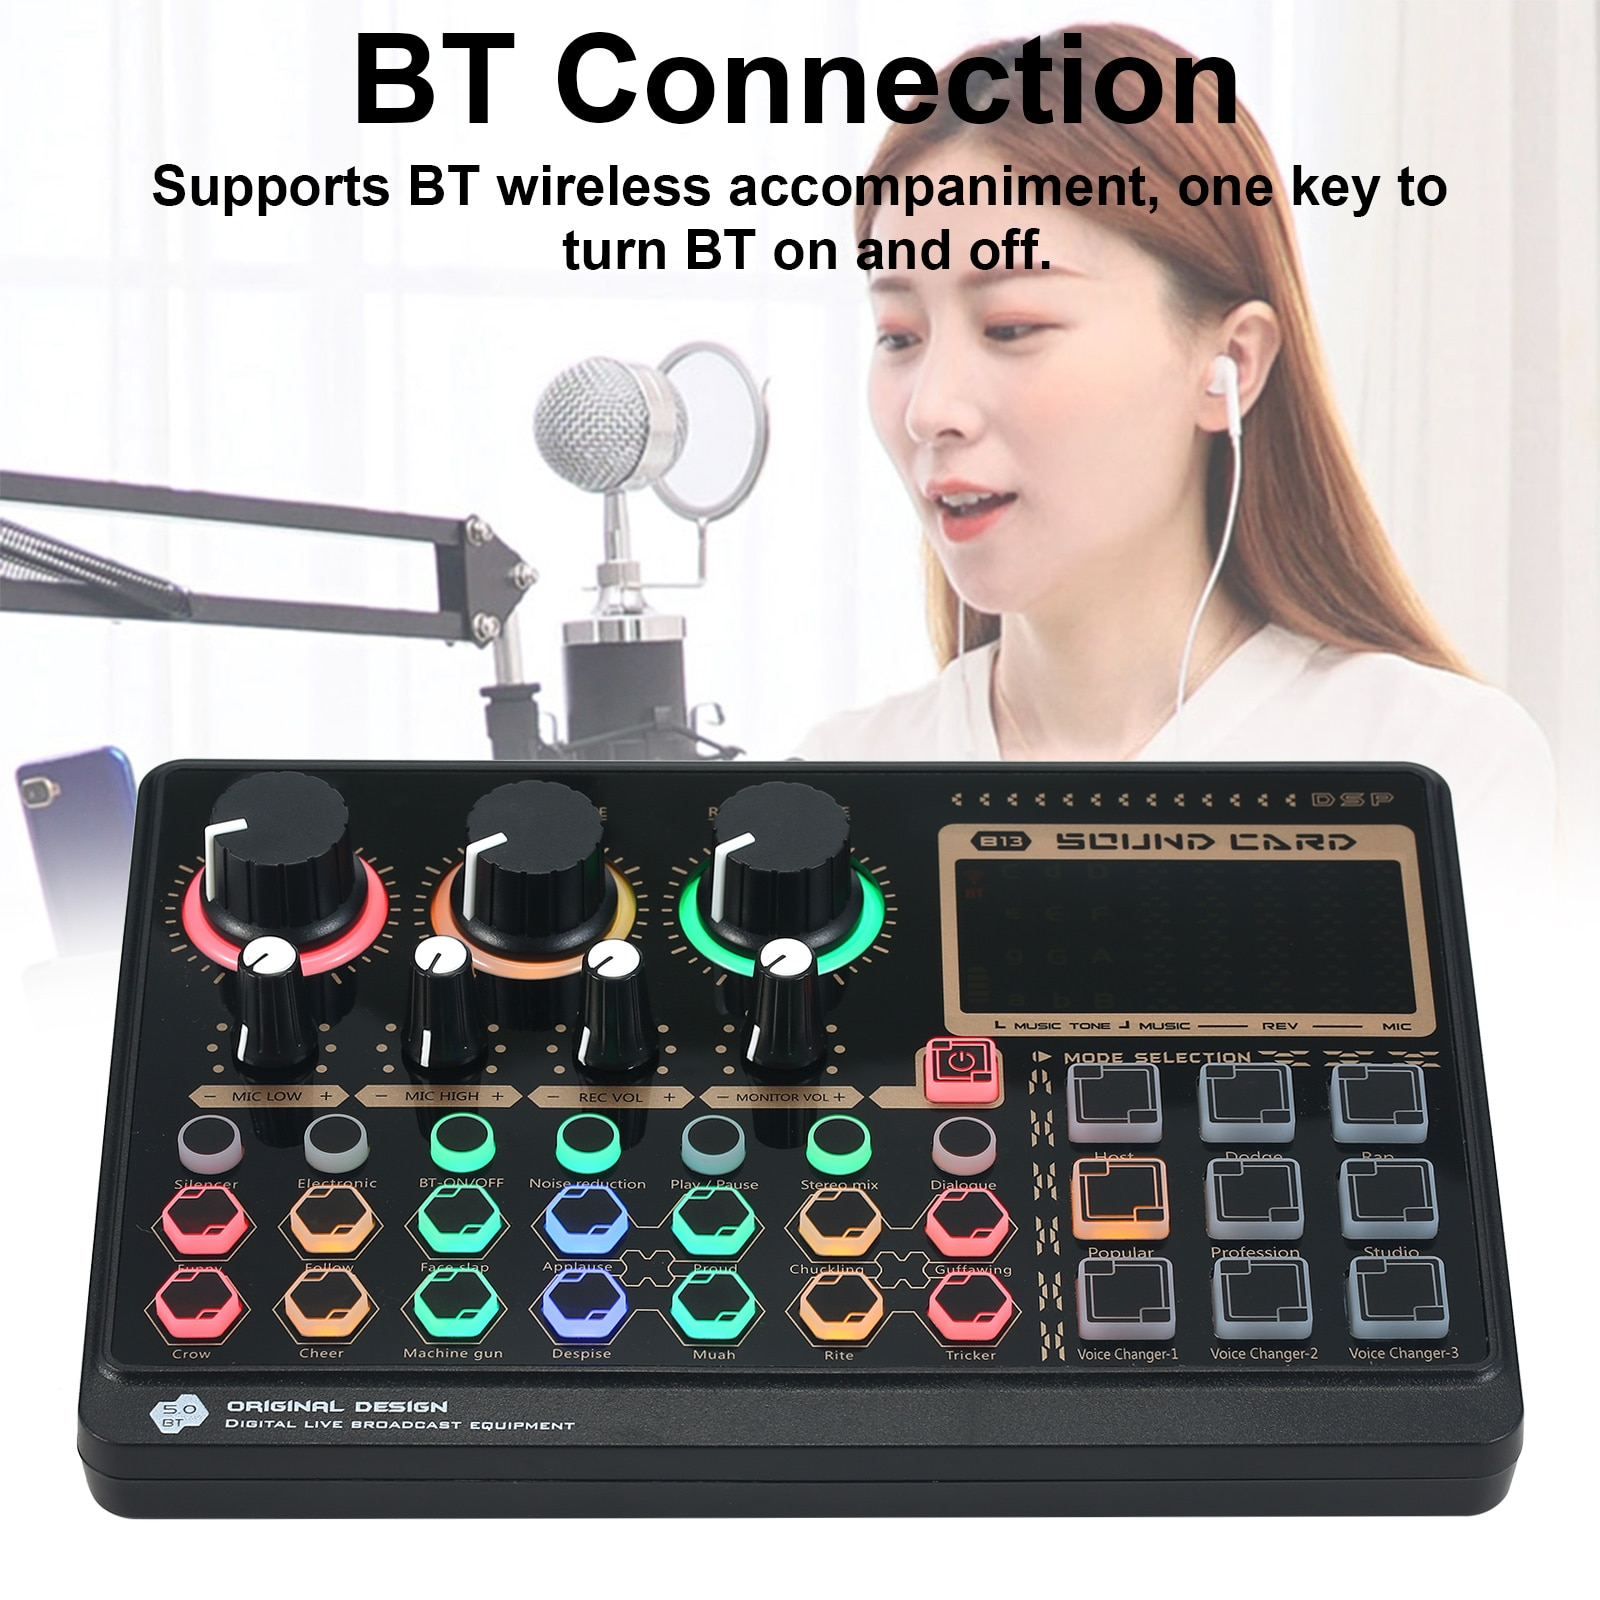 X6mini External Live Sound Card Multifunctional Sound Mixer Board for Live Streaming Music Recording Karaoke Singing 14 Effects enlarge